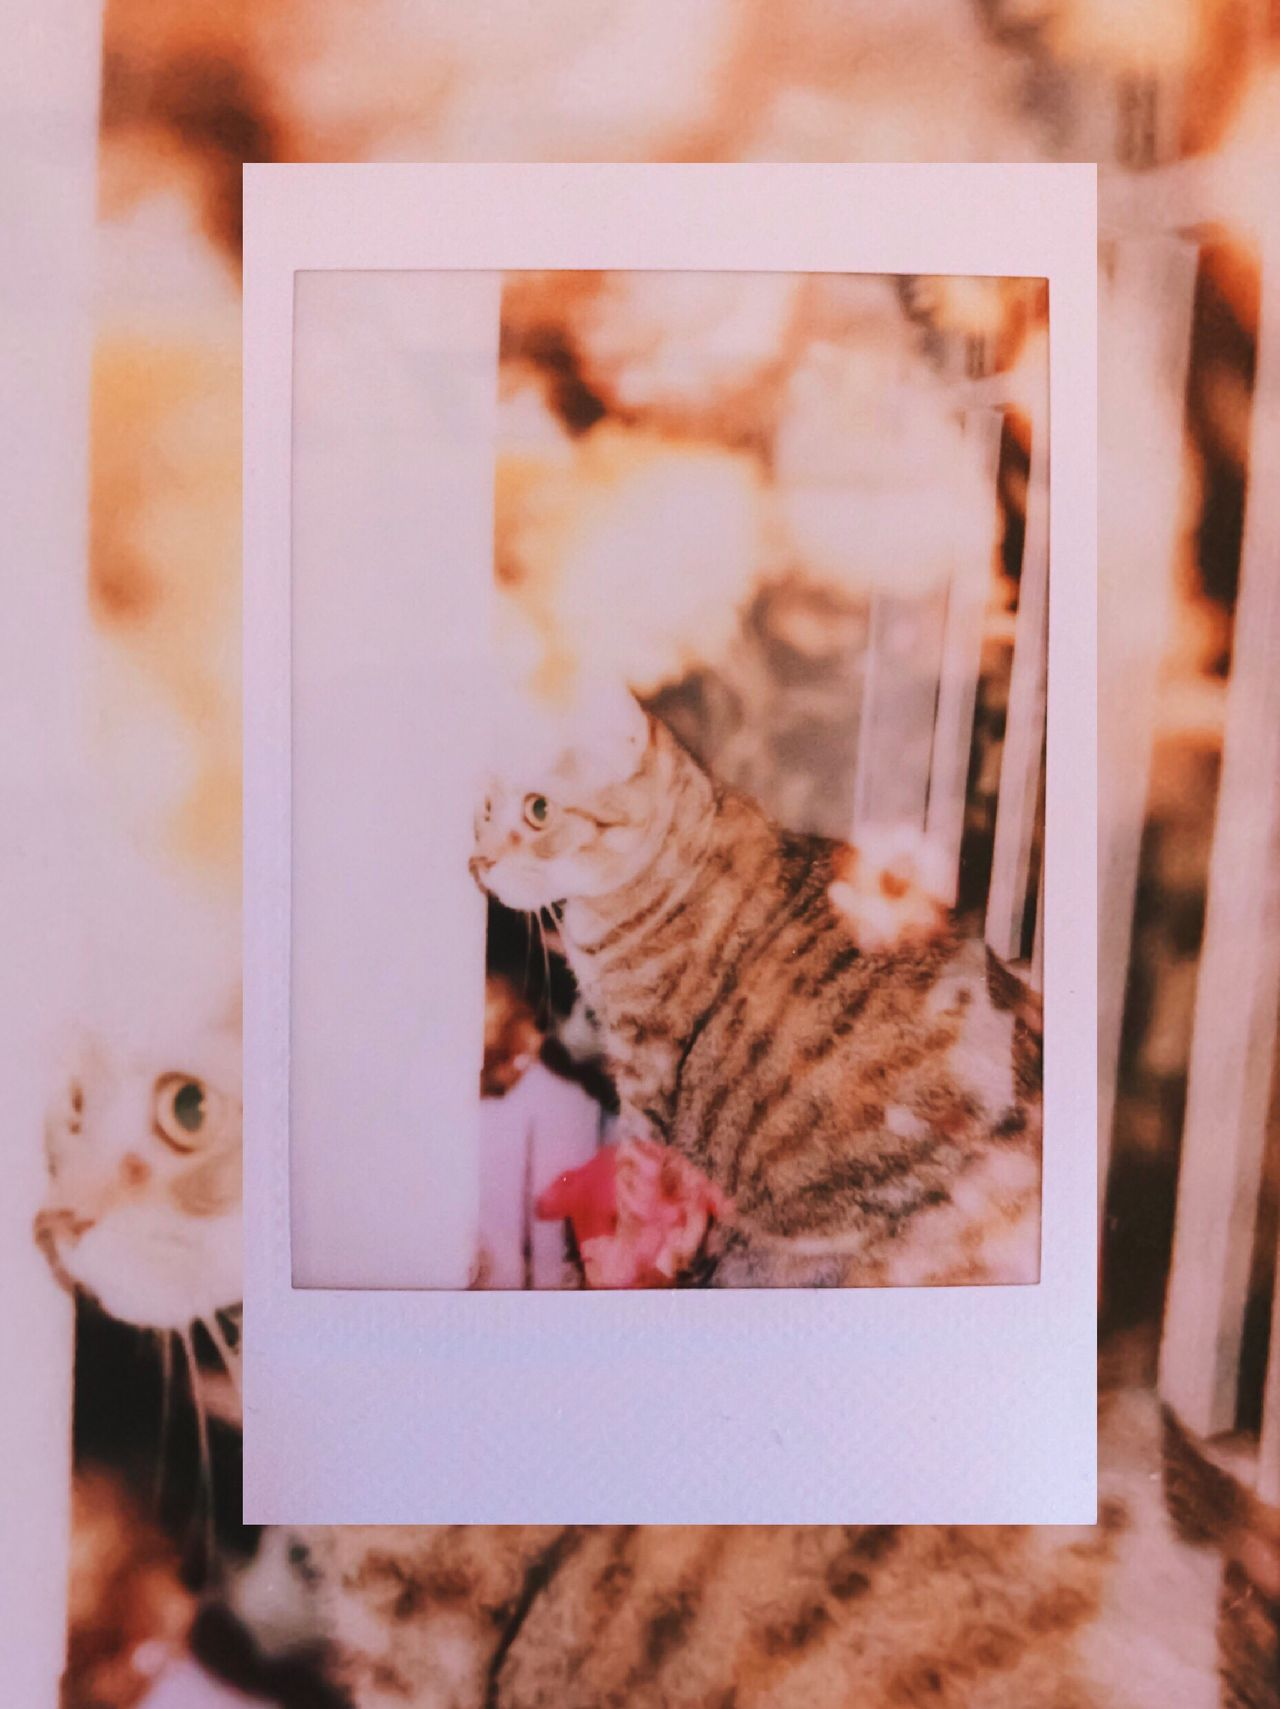 day 27 - Quinn Taylor & flowers // double exposure 😻💐 Instant Photo A Day Domestic Cat Pets Domestic Animals Mammal One Animal Animal Themes Feline Cat Indoors  No People Day Double Exposure Film Is Not Dead Film Photography Film Kitten Flower Flowers Simplicity Beauty